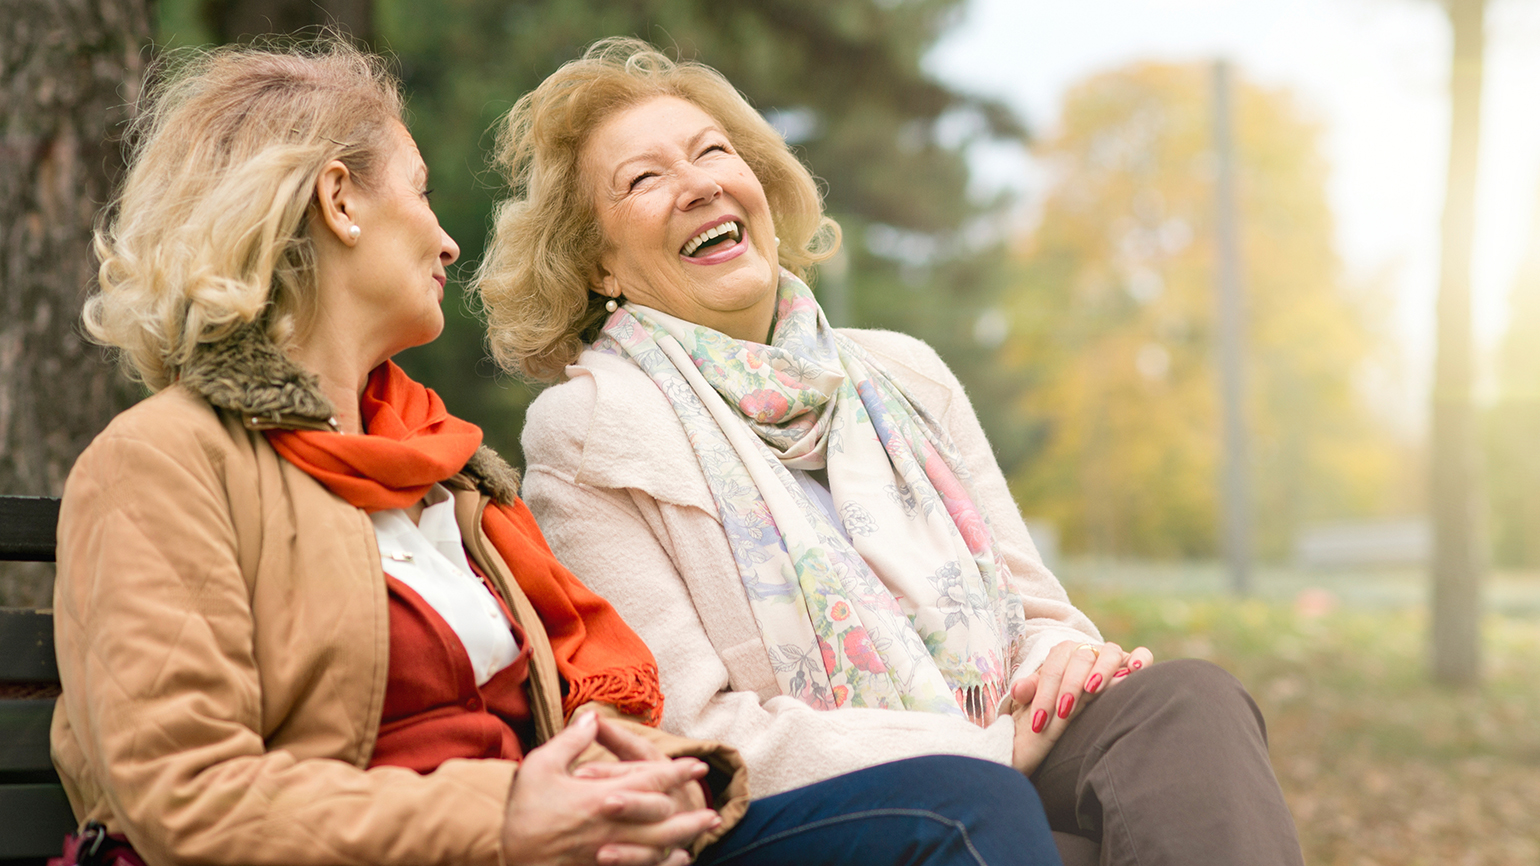 Women laughing on an outside bench